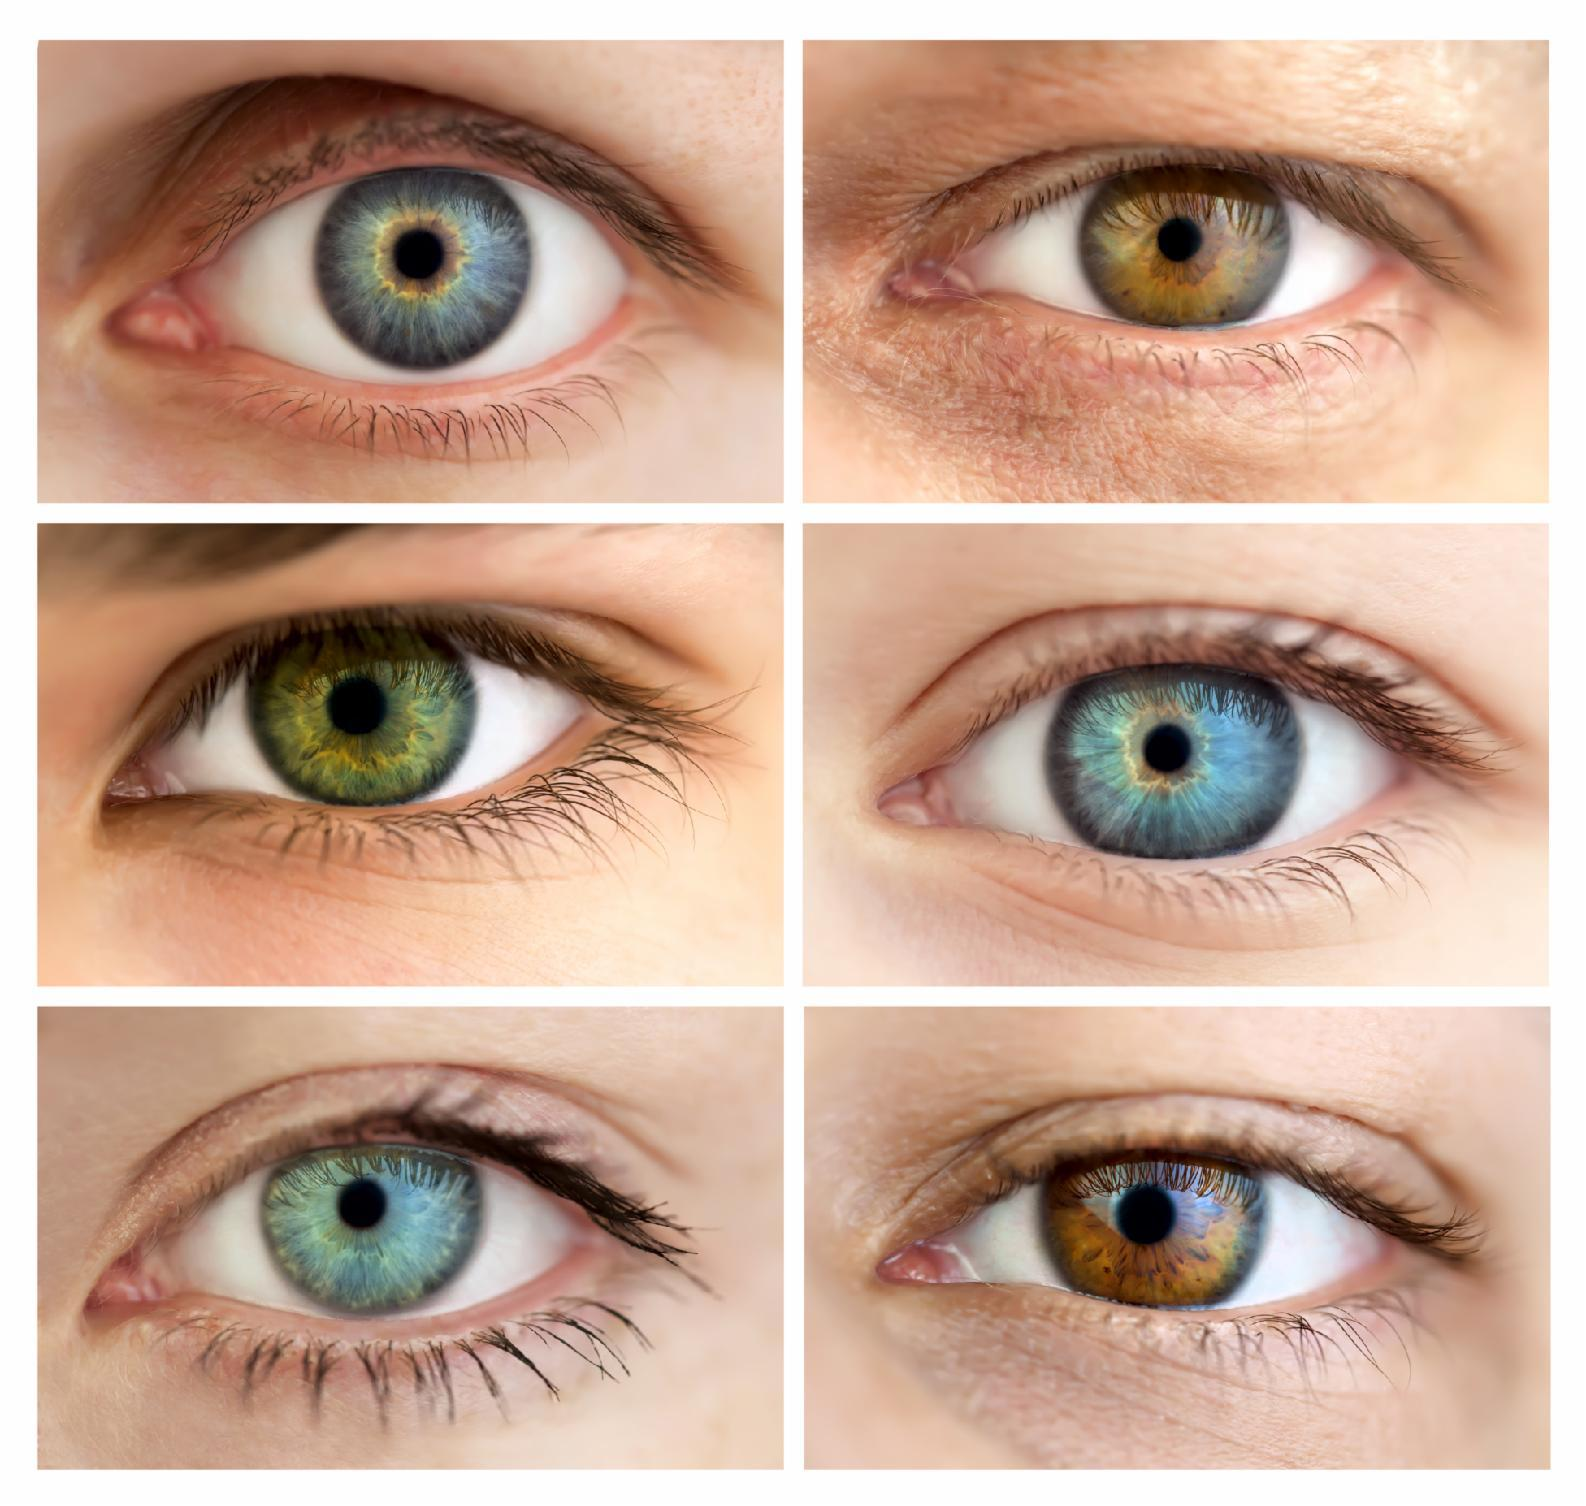 What eye colour do you have?